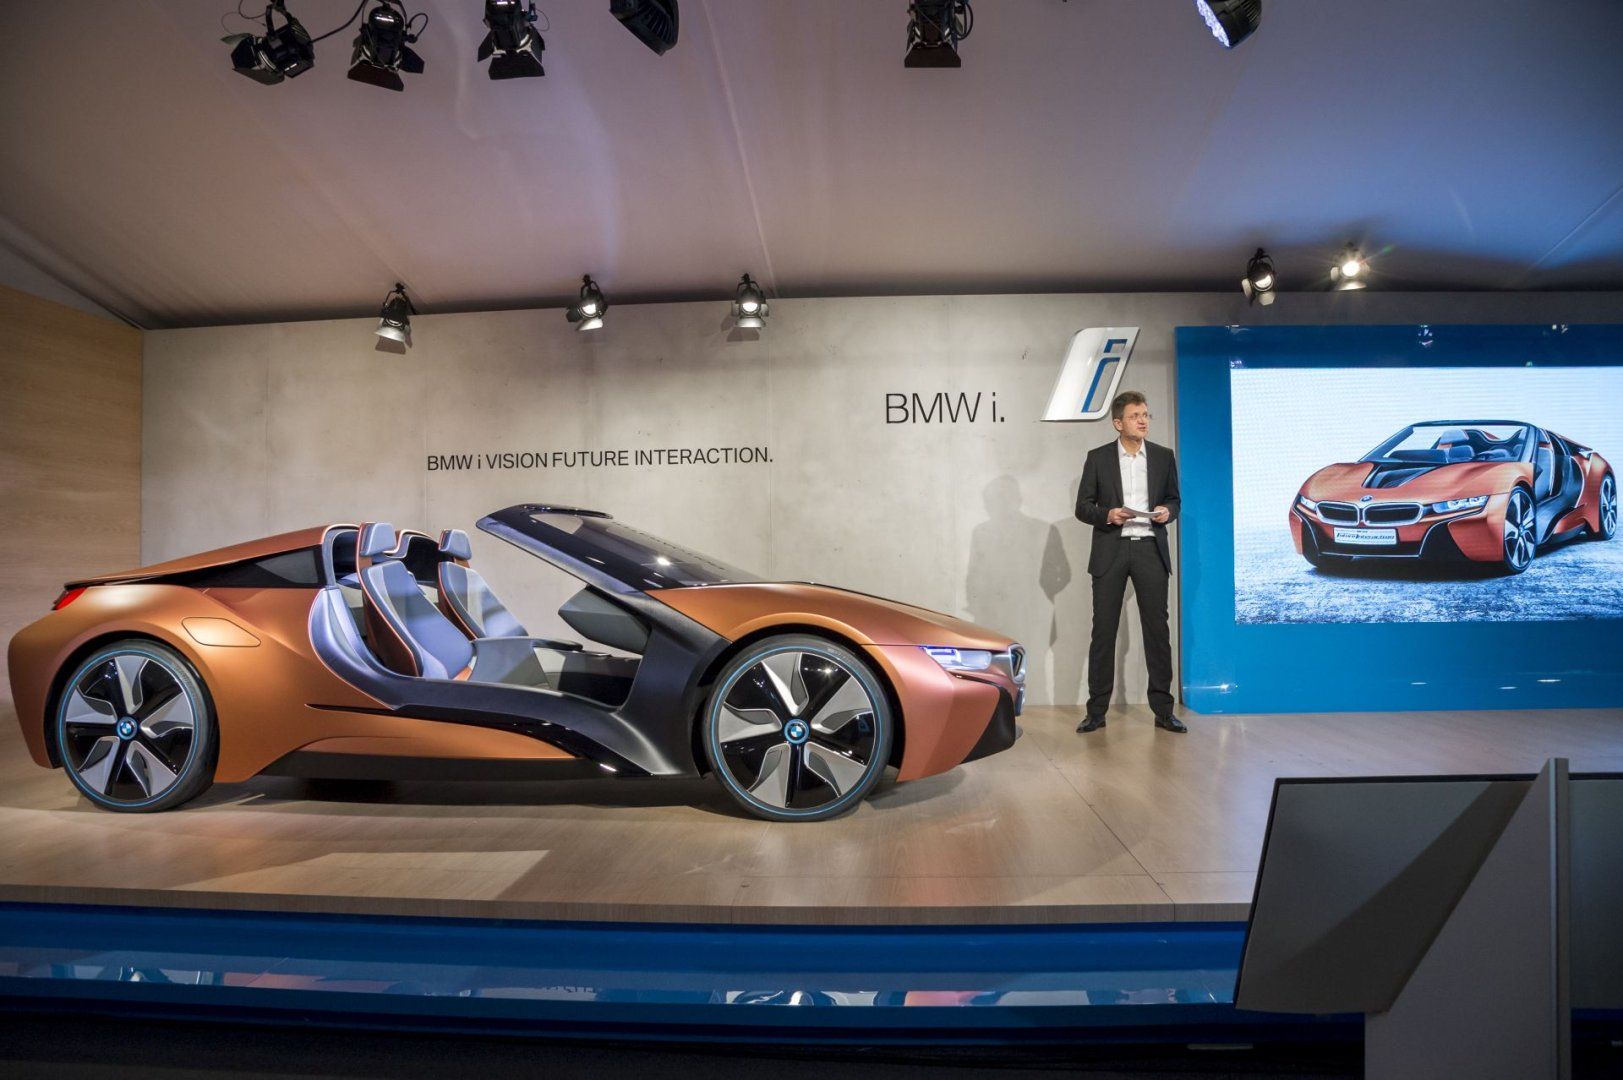 bmw at the consumer electronics show (ces) 2016 in las vegas • autotalk